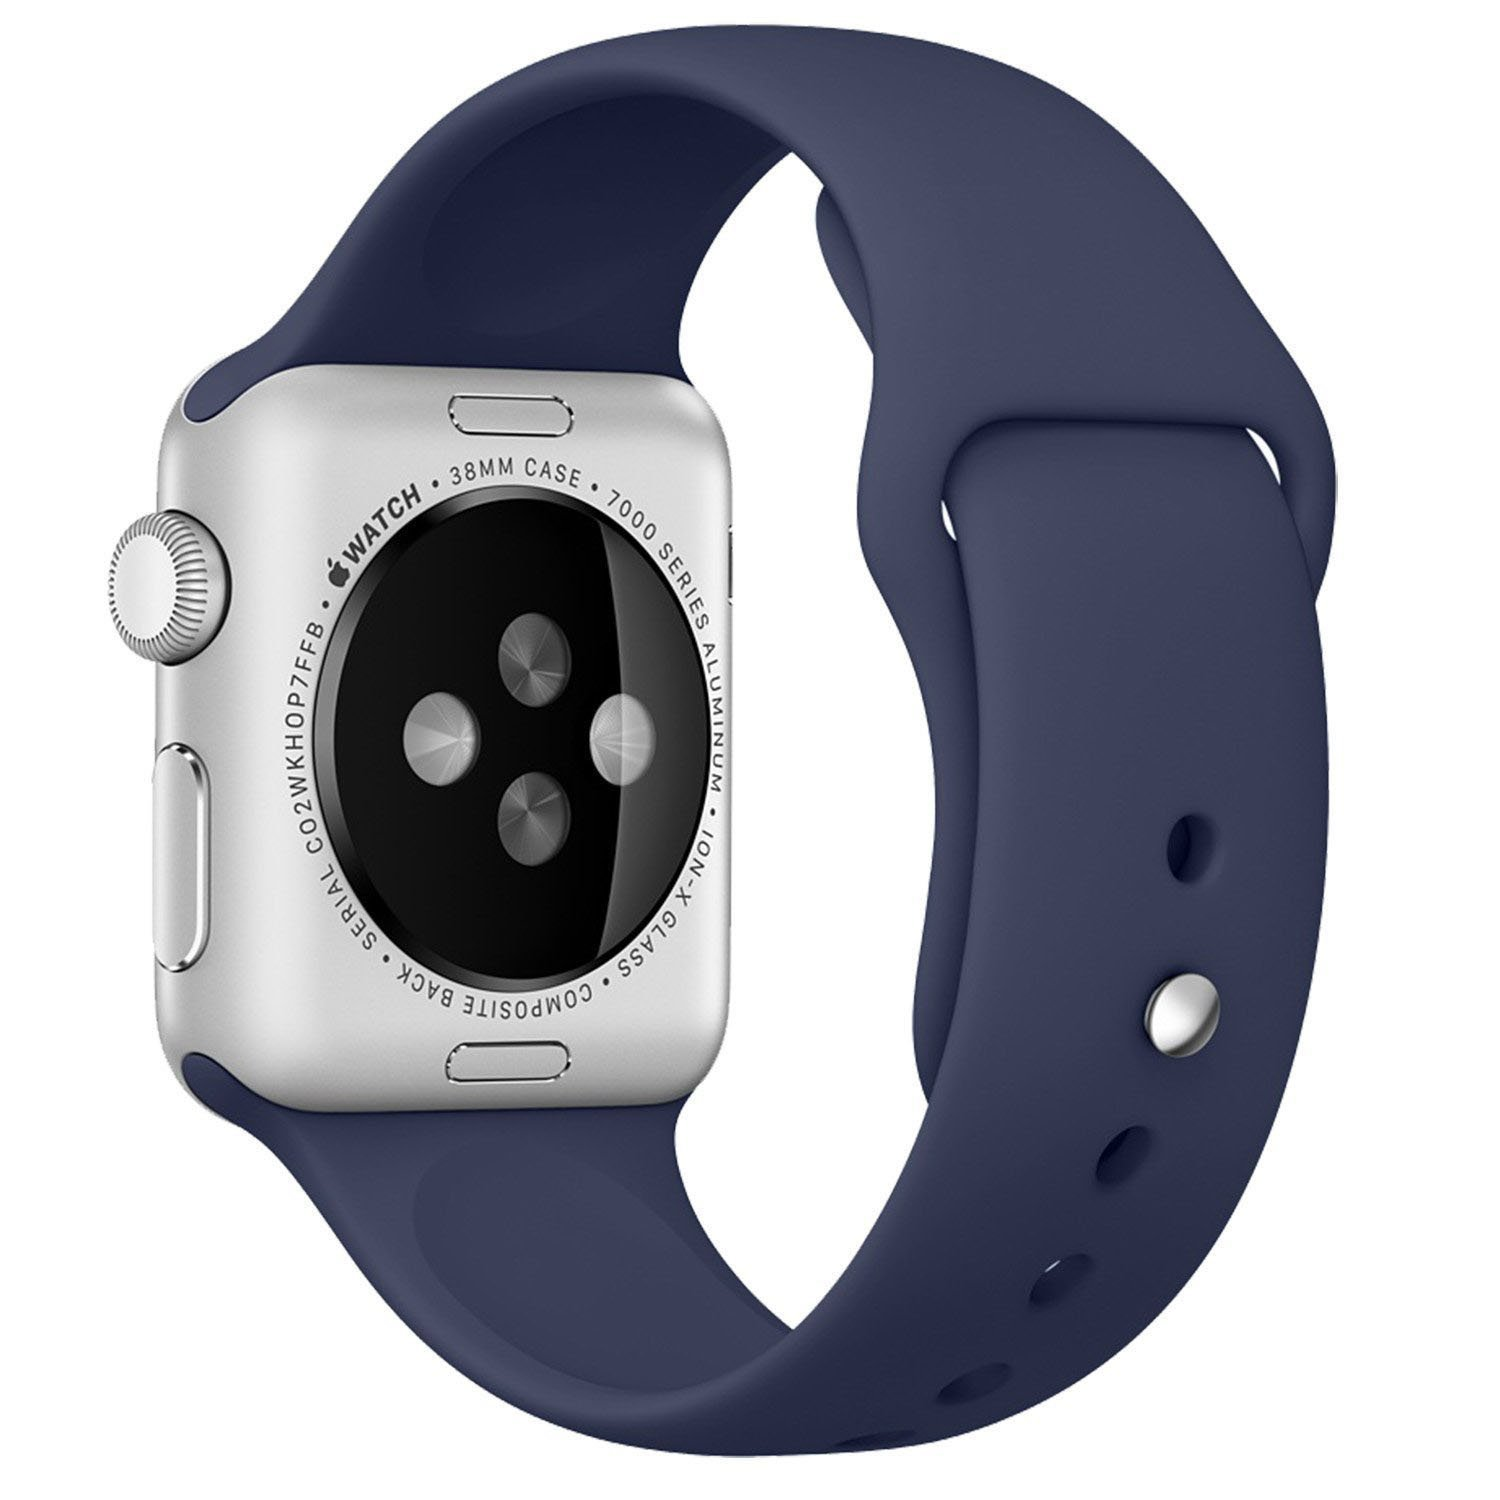 Apple Watch Band - Fashion Men / Women Soft Silicone Replacement Smart Watch Bands For Sport Version Apple iWatch Band 38mm-Midnight Blue